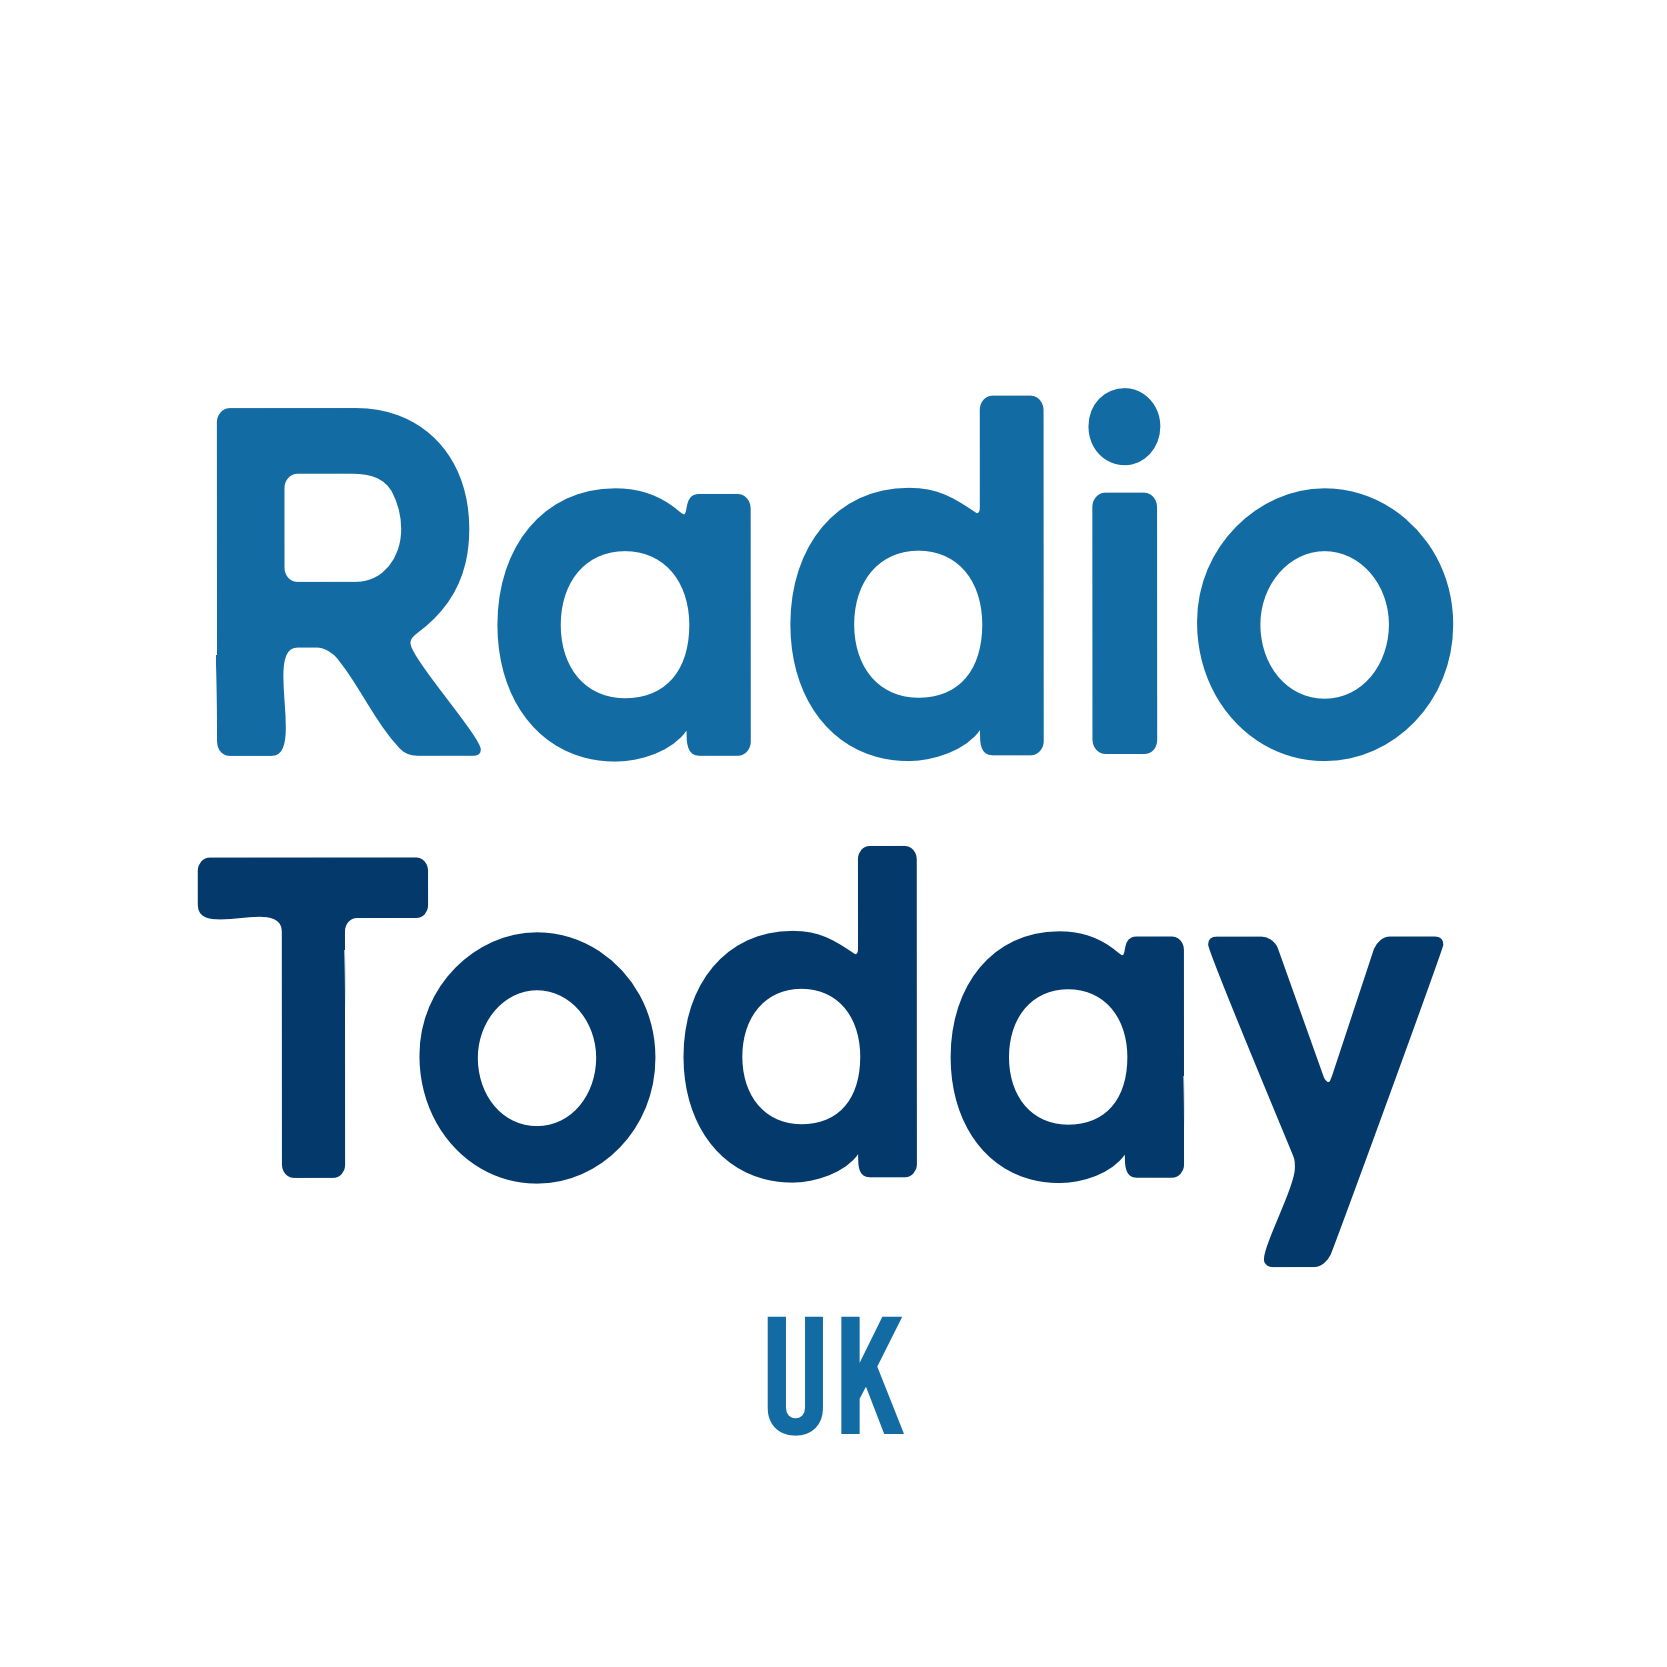 radiotoday.co.uk